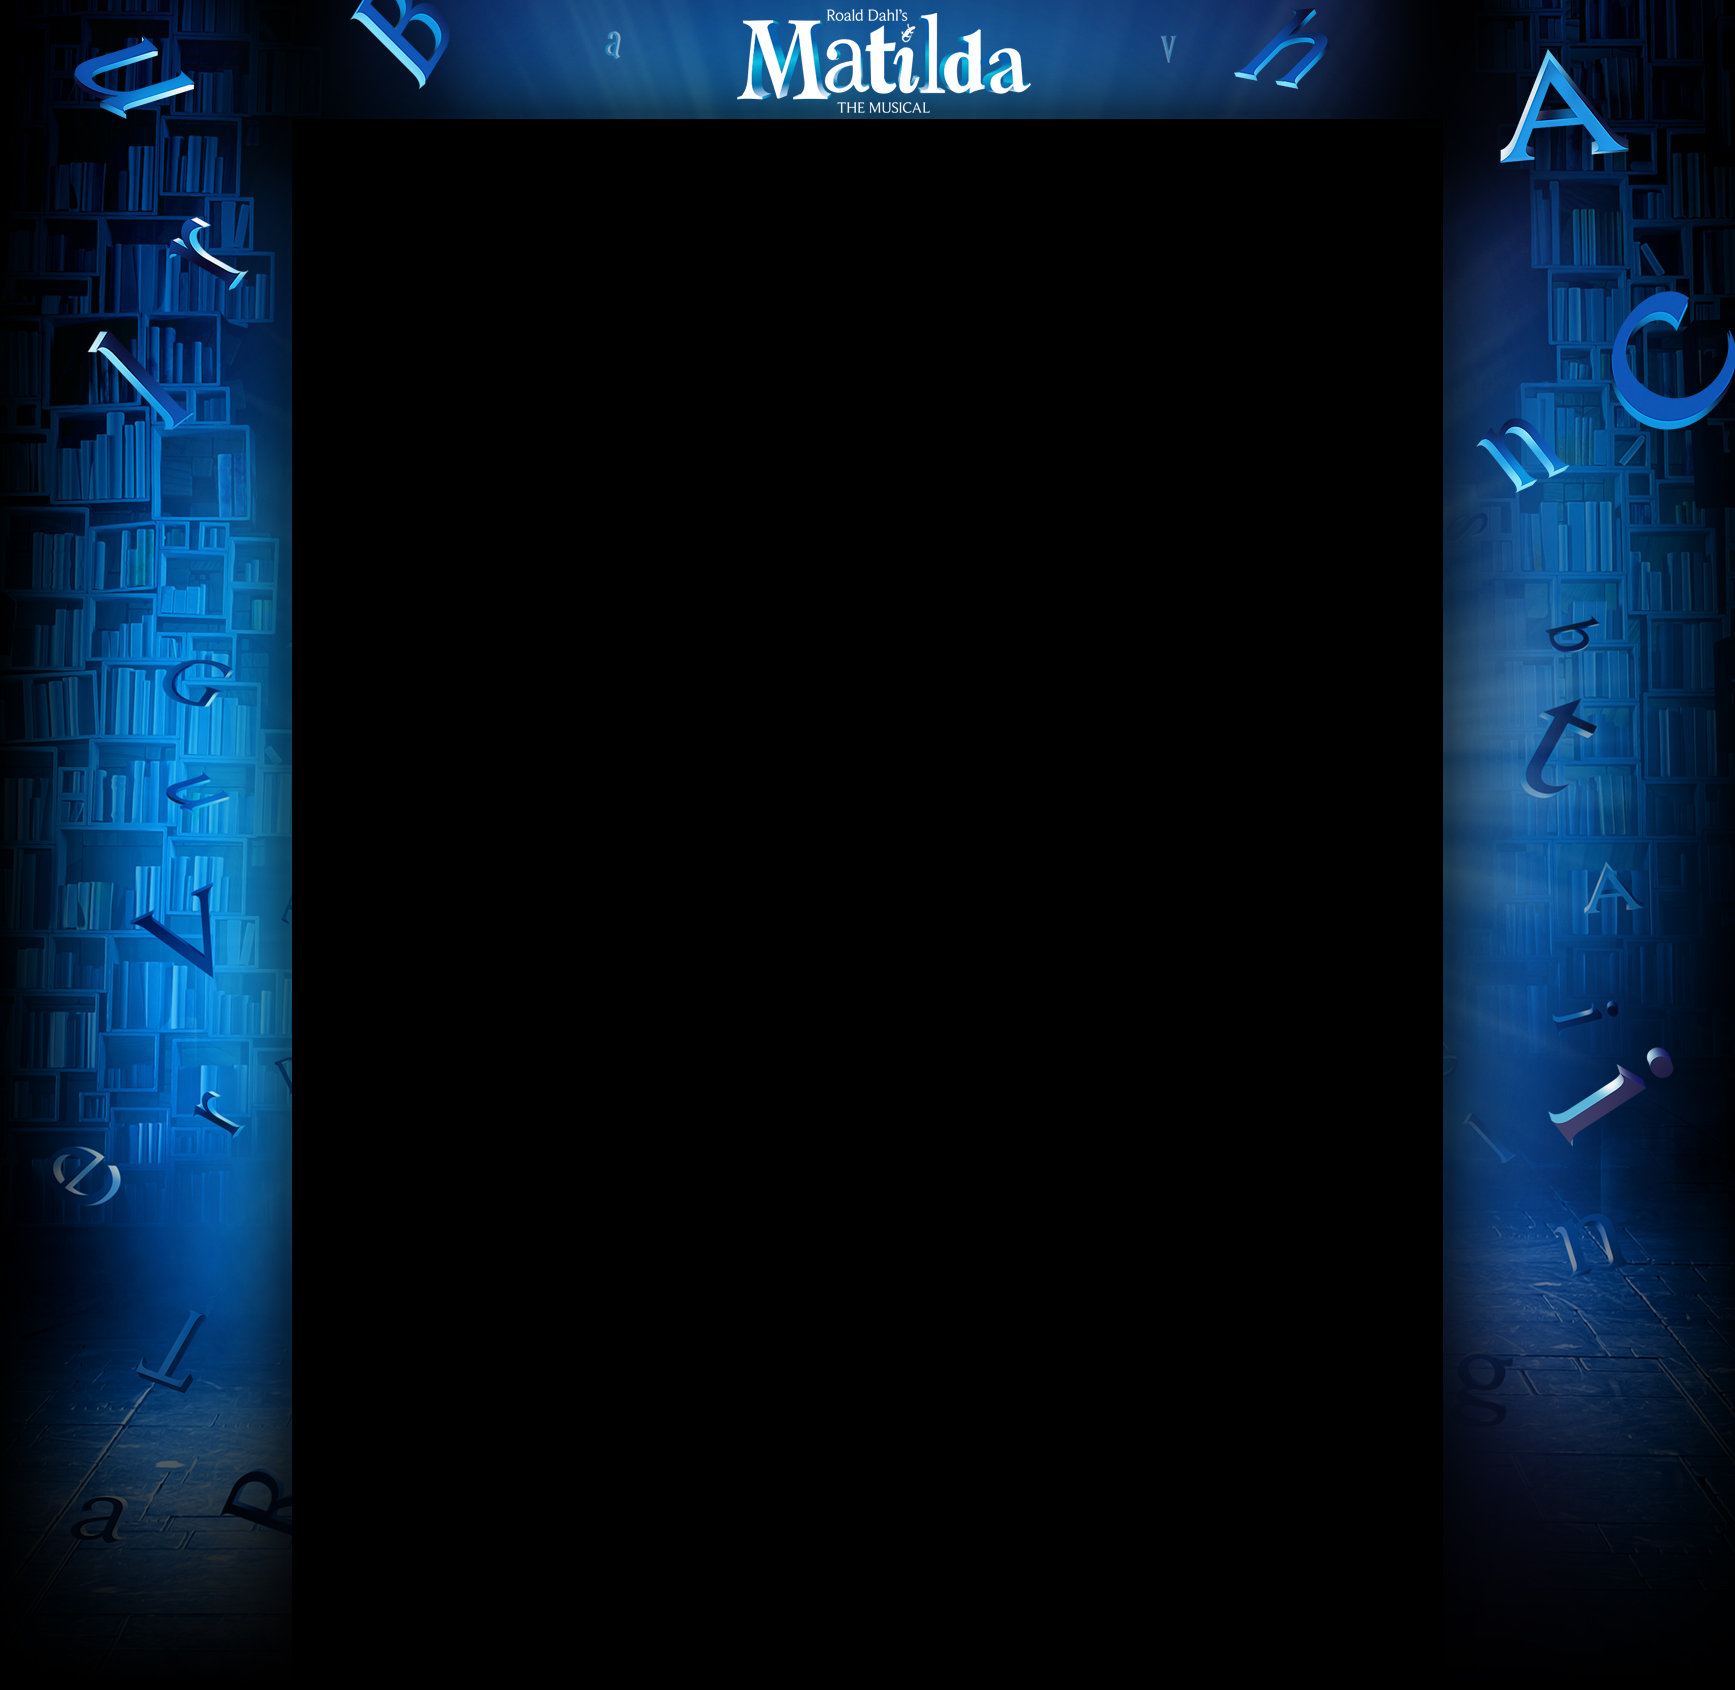 matilda-background-si.jpg